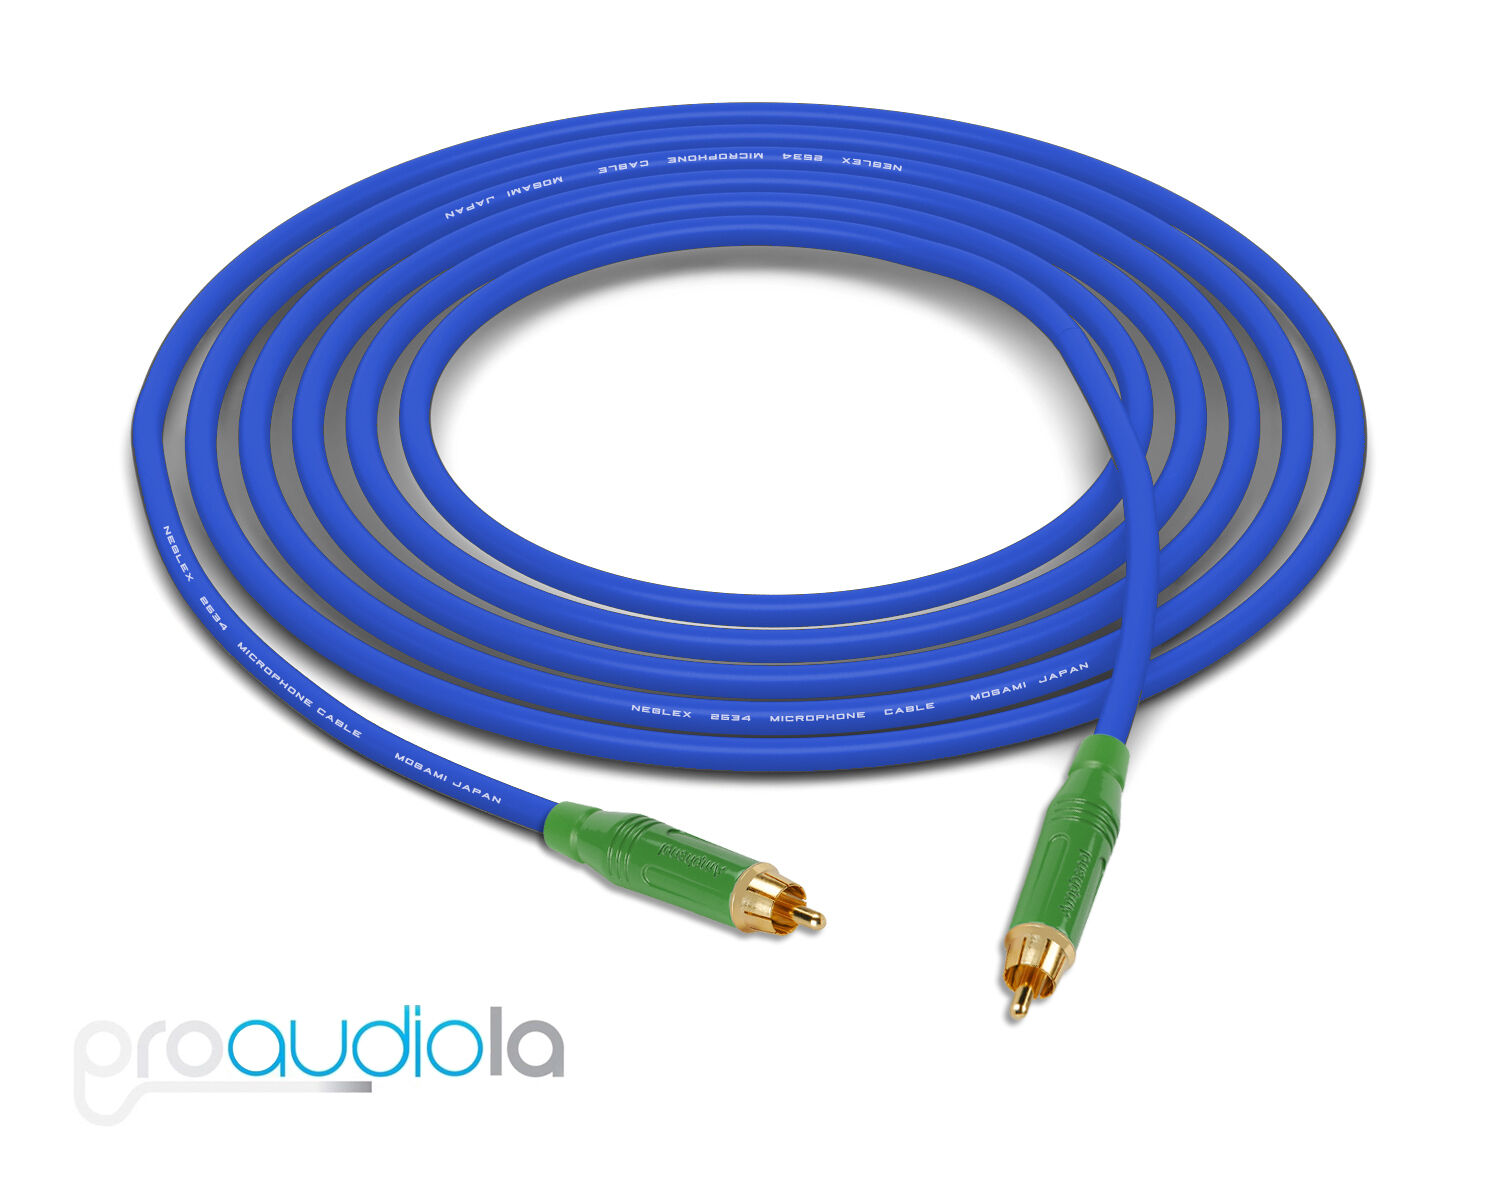 Mogami 2534 Quad Cable   Grün Amphenol RCA to RCA   Blau 35 Feet 35 Ft. 35'